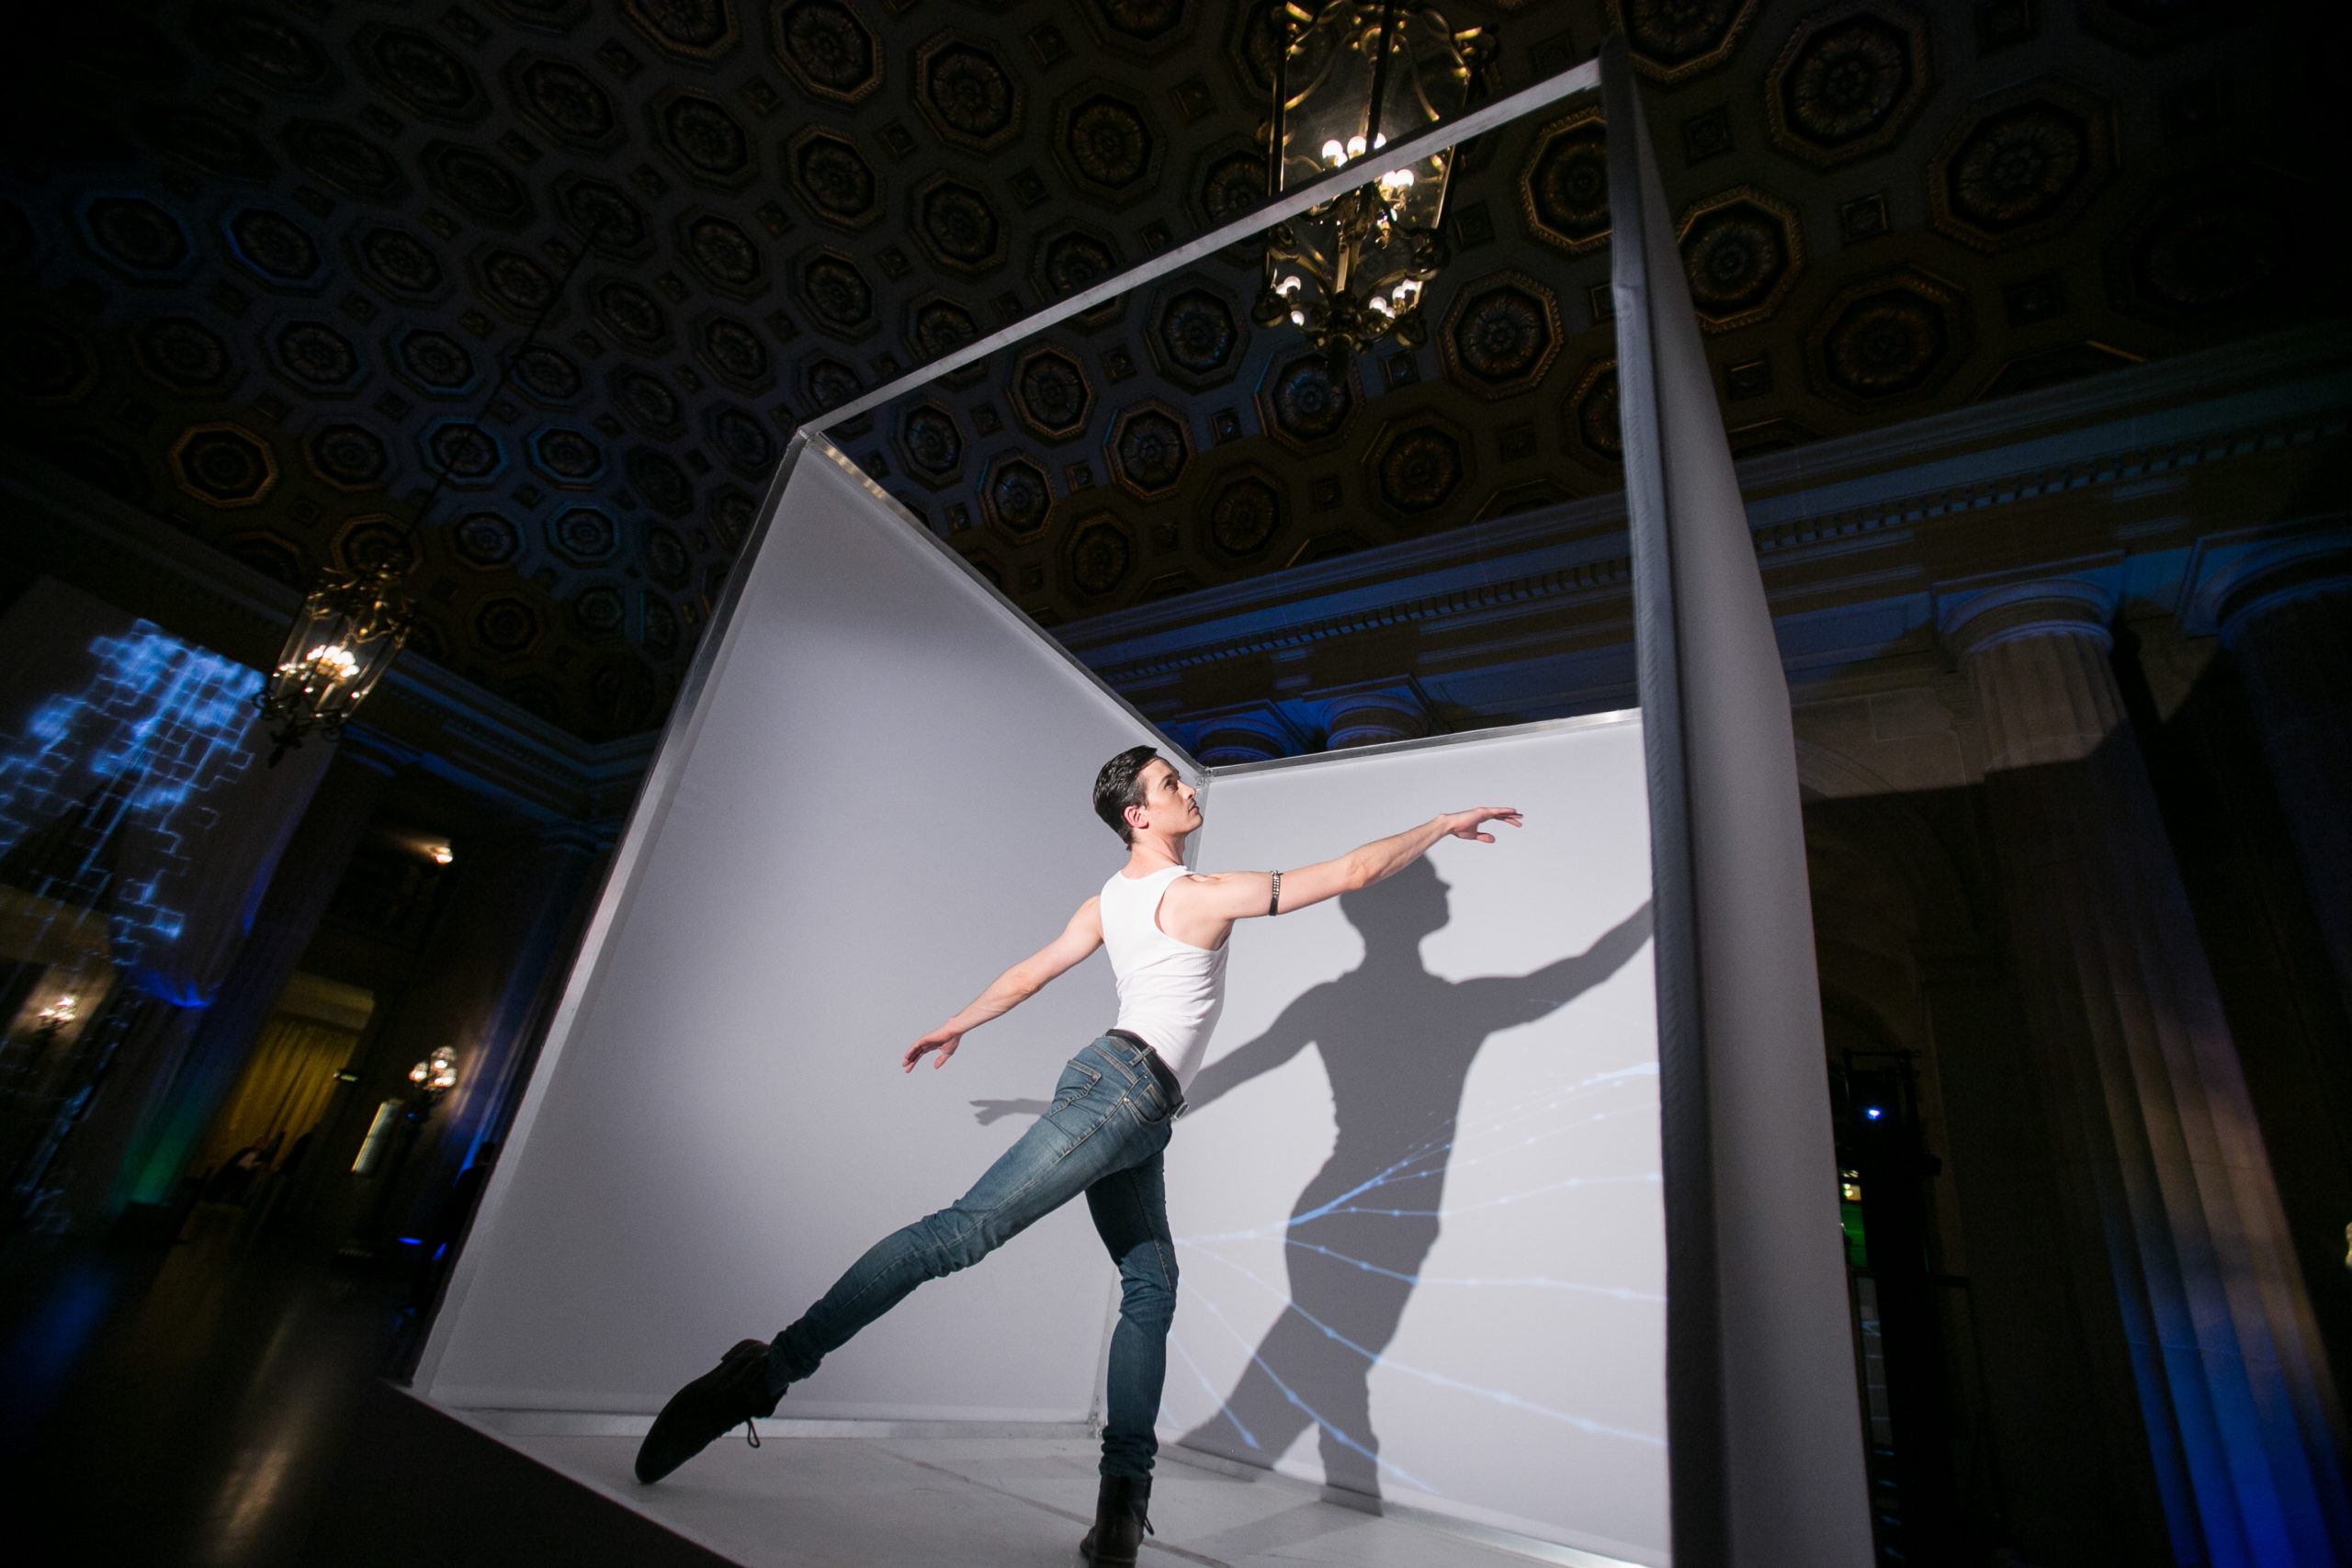 SAN FRANCISCO BALLET HOSTS SENSORIUM: AN EVENING OF DANCE, ART, AND MUSIC ON FEBRUARY 25, 2020